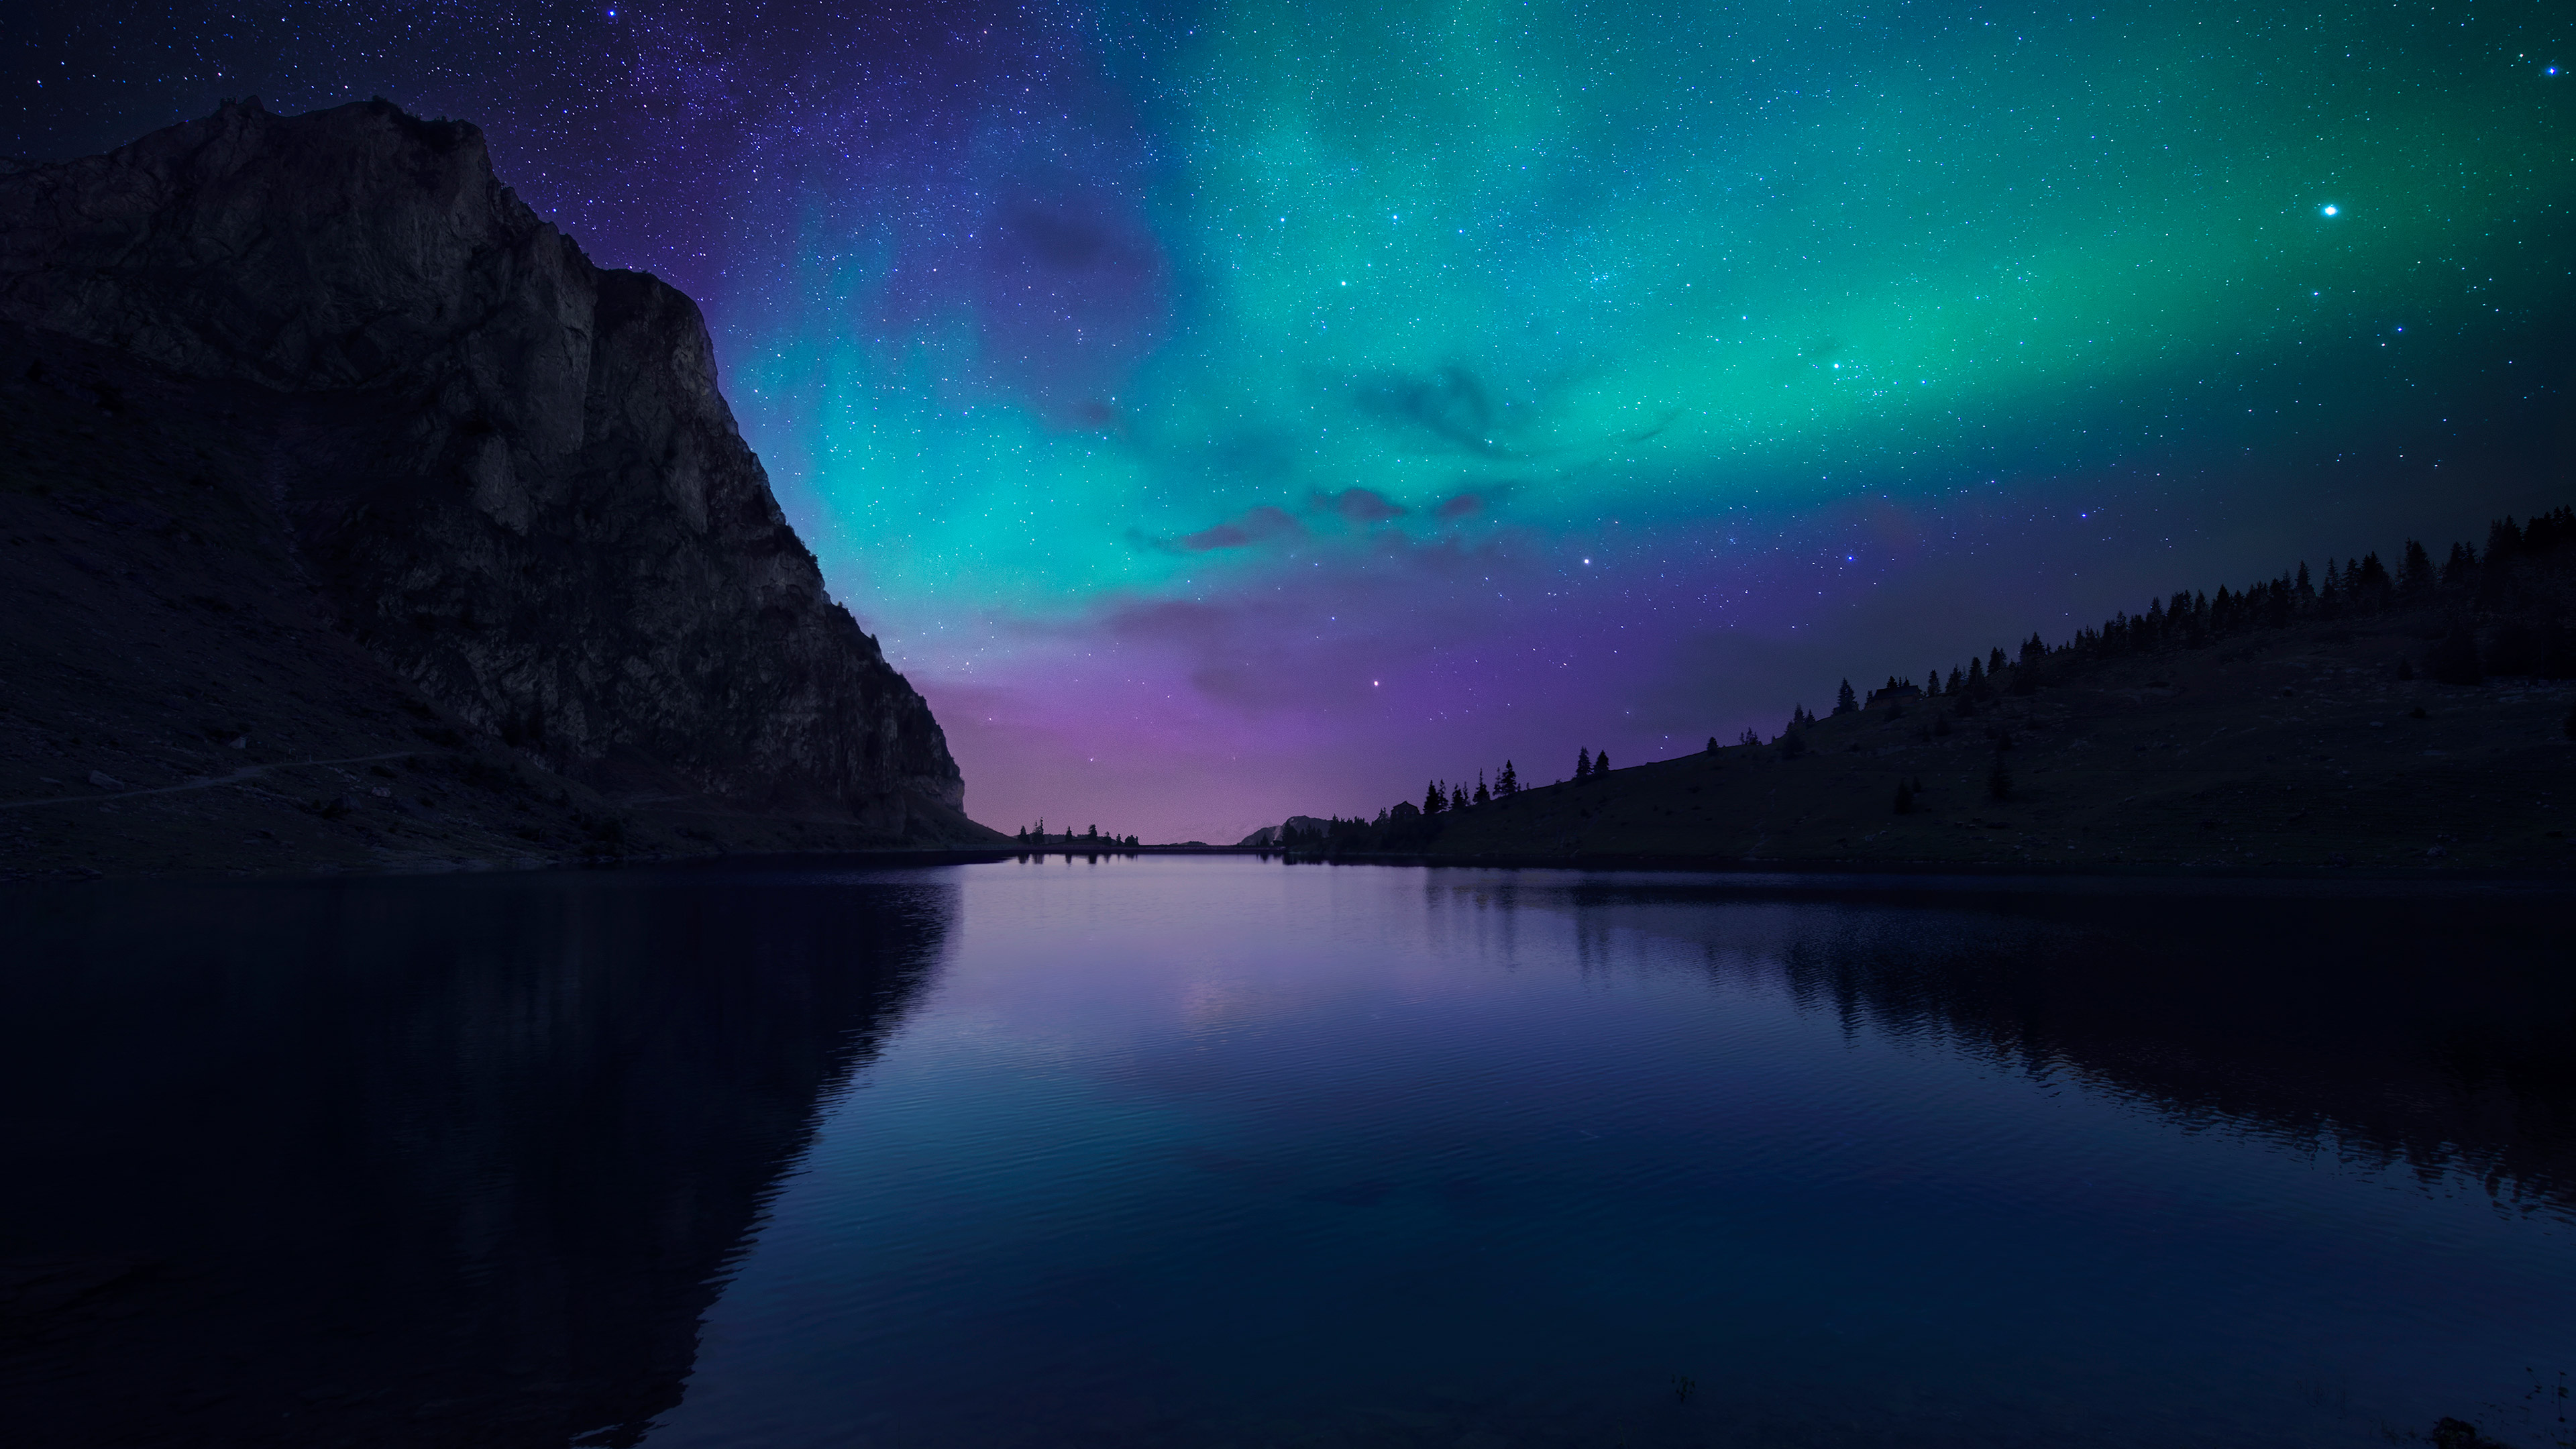 Lake Aurora, HD Nature, 4k Wallpapers, Images, Backgrounds